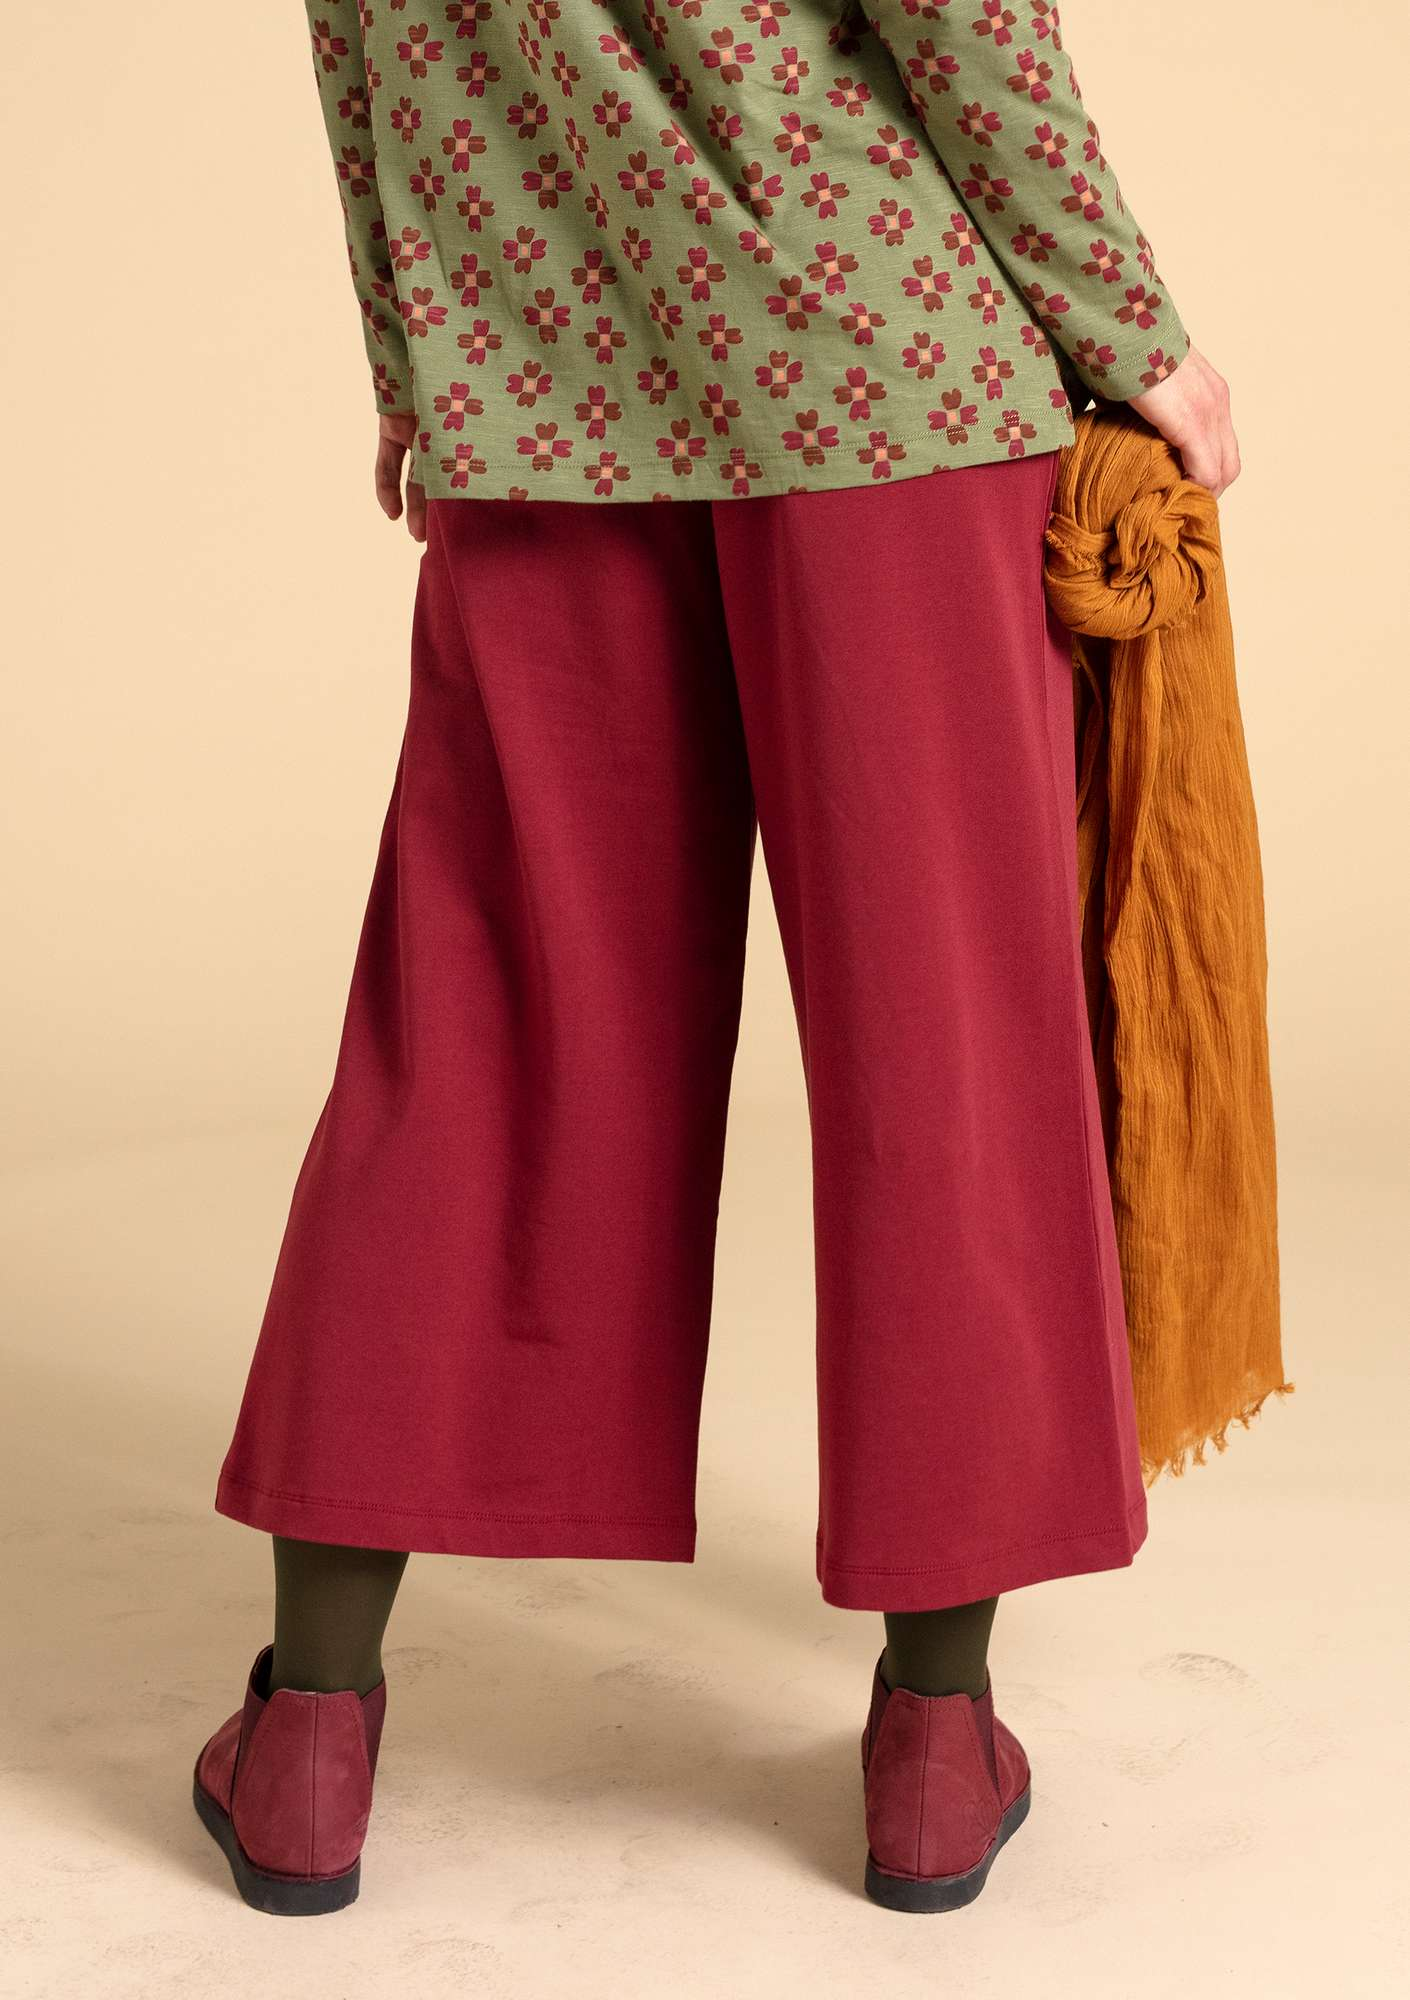 Pantalon uni pomegranate